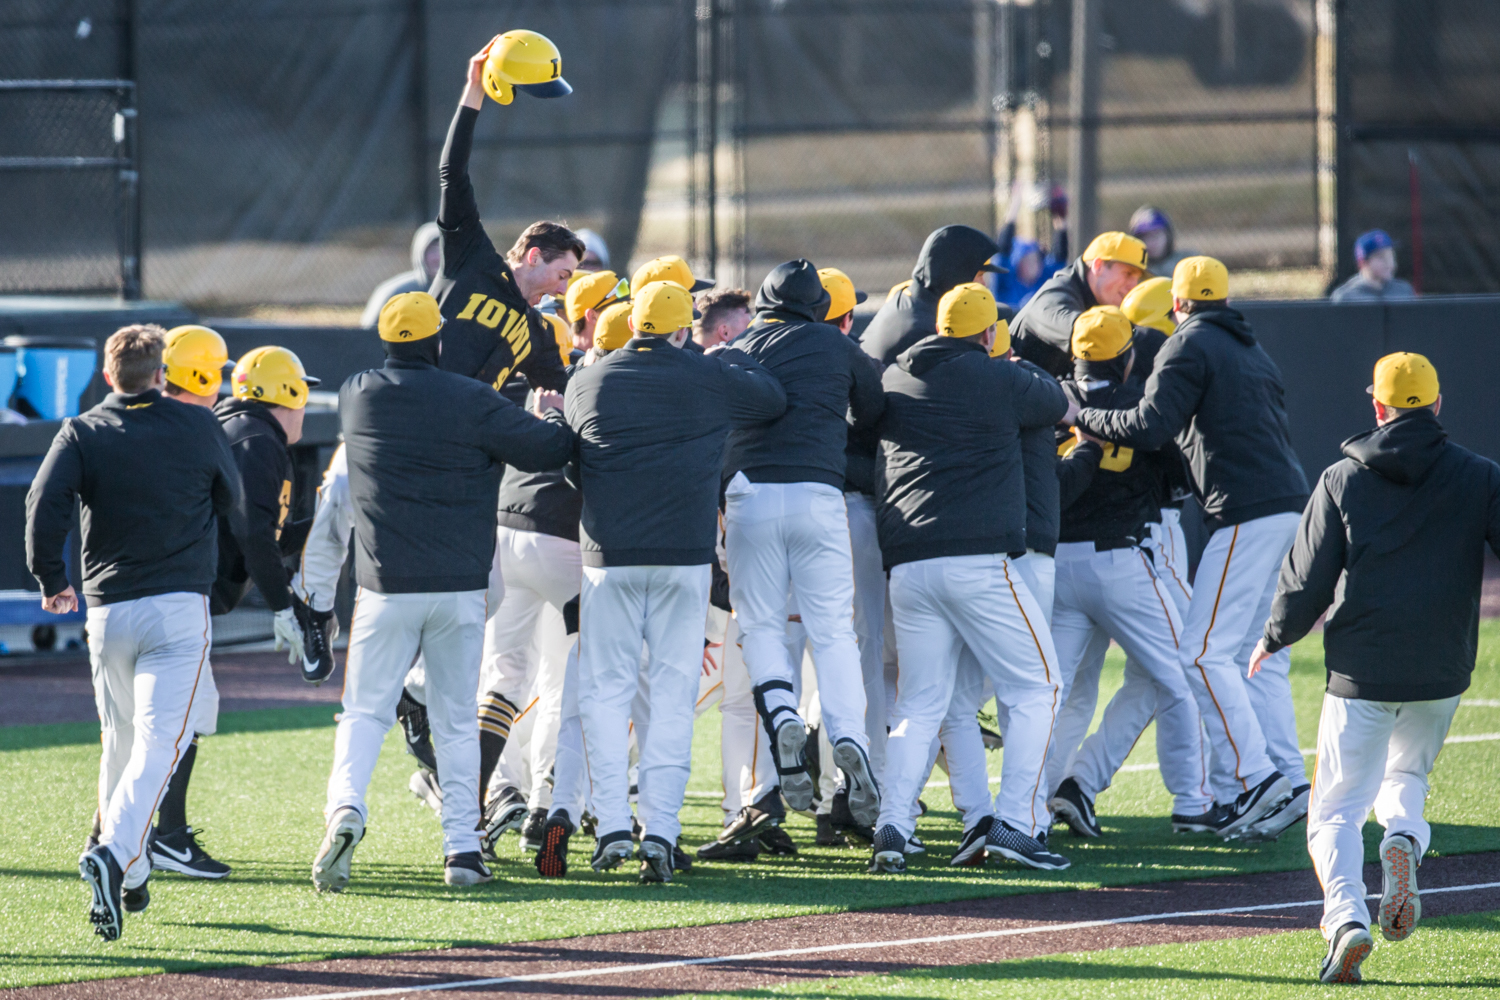 Iowa+players+celebrate+a+walk-off+RBI+during+the+first+game+of+a+baseball+doubleheader+between+Iowa+and+Cal-State+Northridge+at+Duane+Banks+Field+on+Sunday%2C+March+17%2C+2019.+The+Hawkeyes+defeated+the+Matadors%2C+5-4.